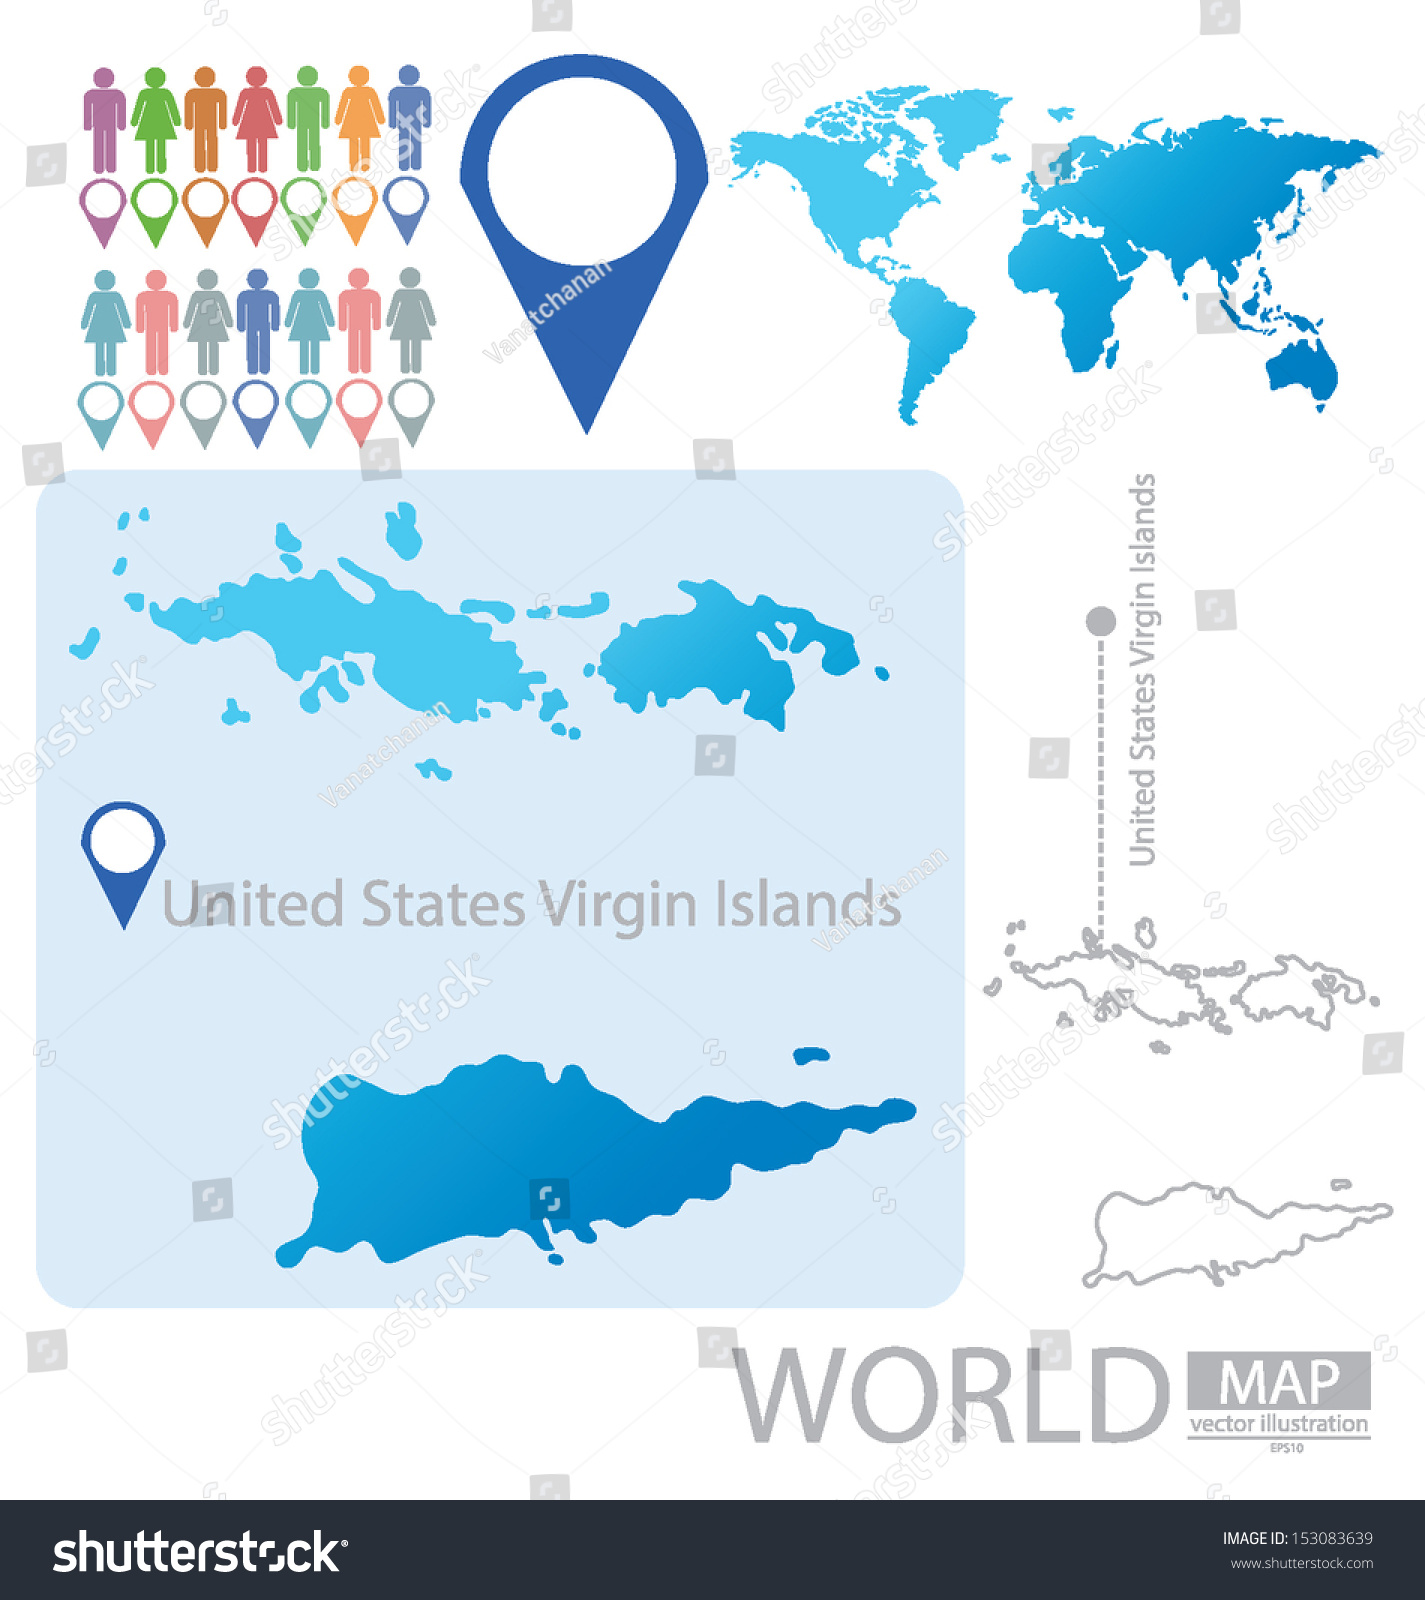 World Map Virgin Islands.United States Virgin Islands World Map Stock Vector Royalty Free